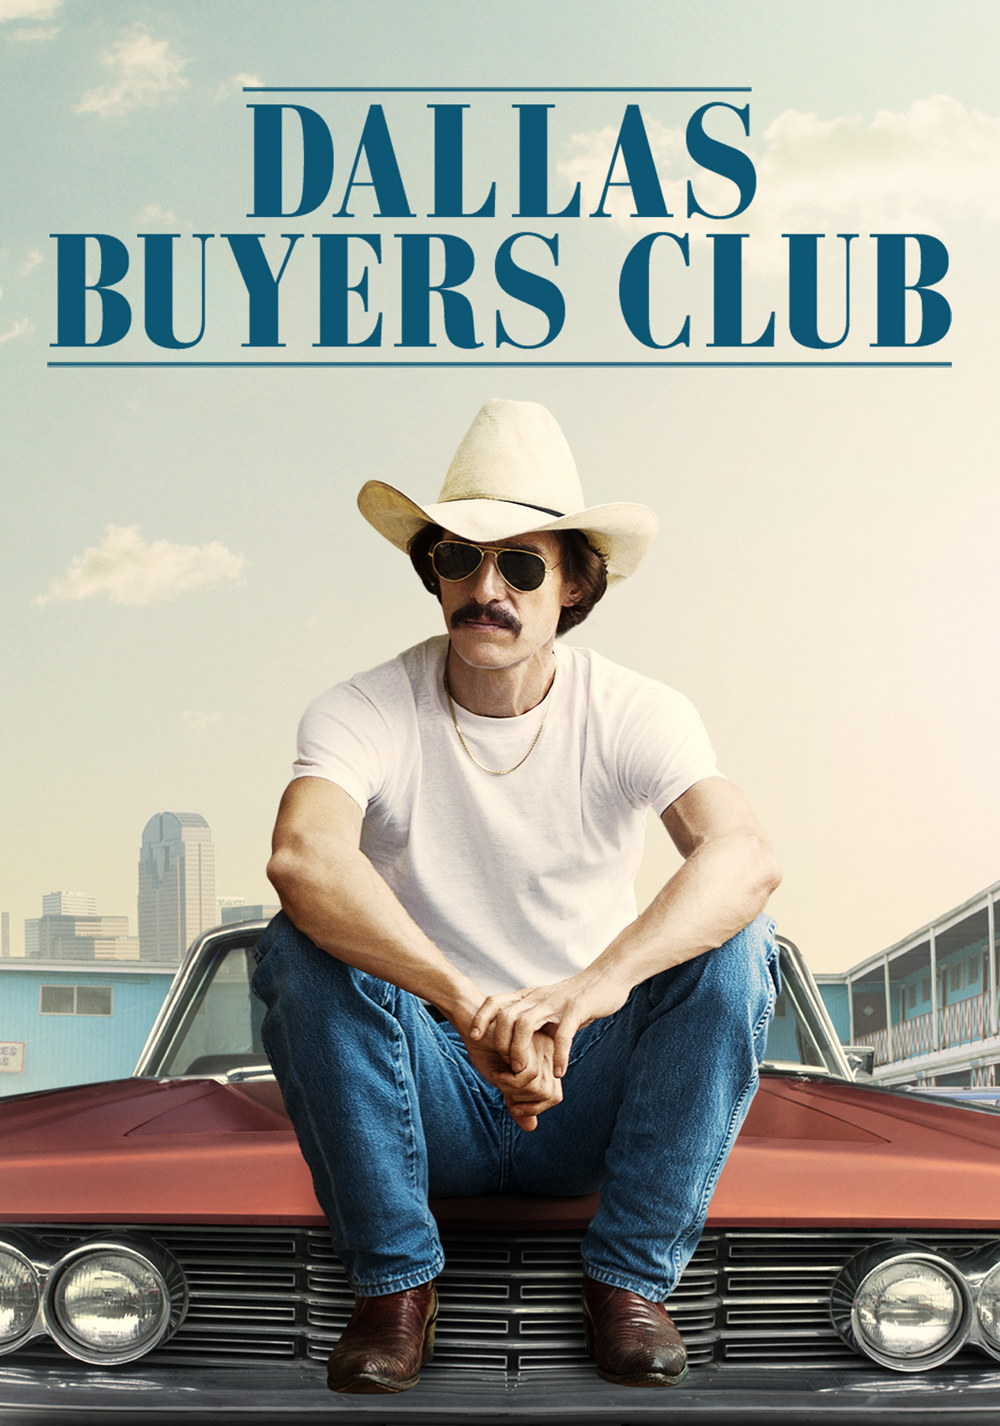 Watch Full Dallas Buyers Club Movie Online - Explorers Movies